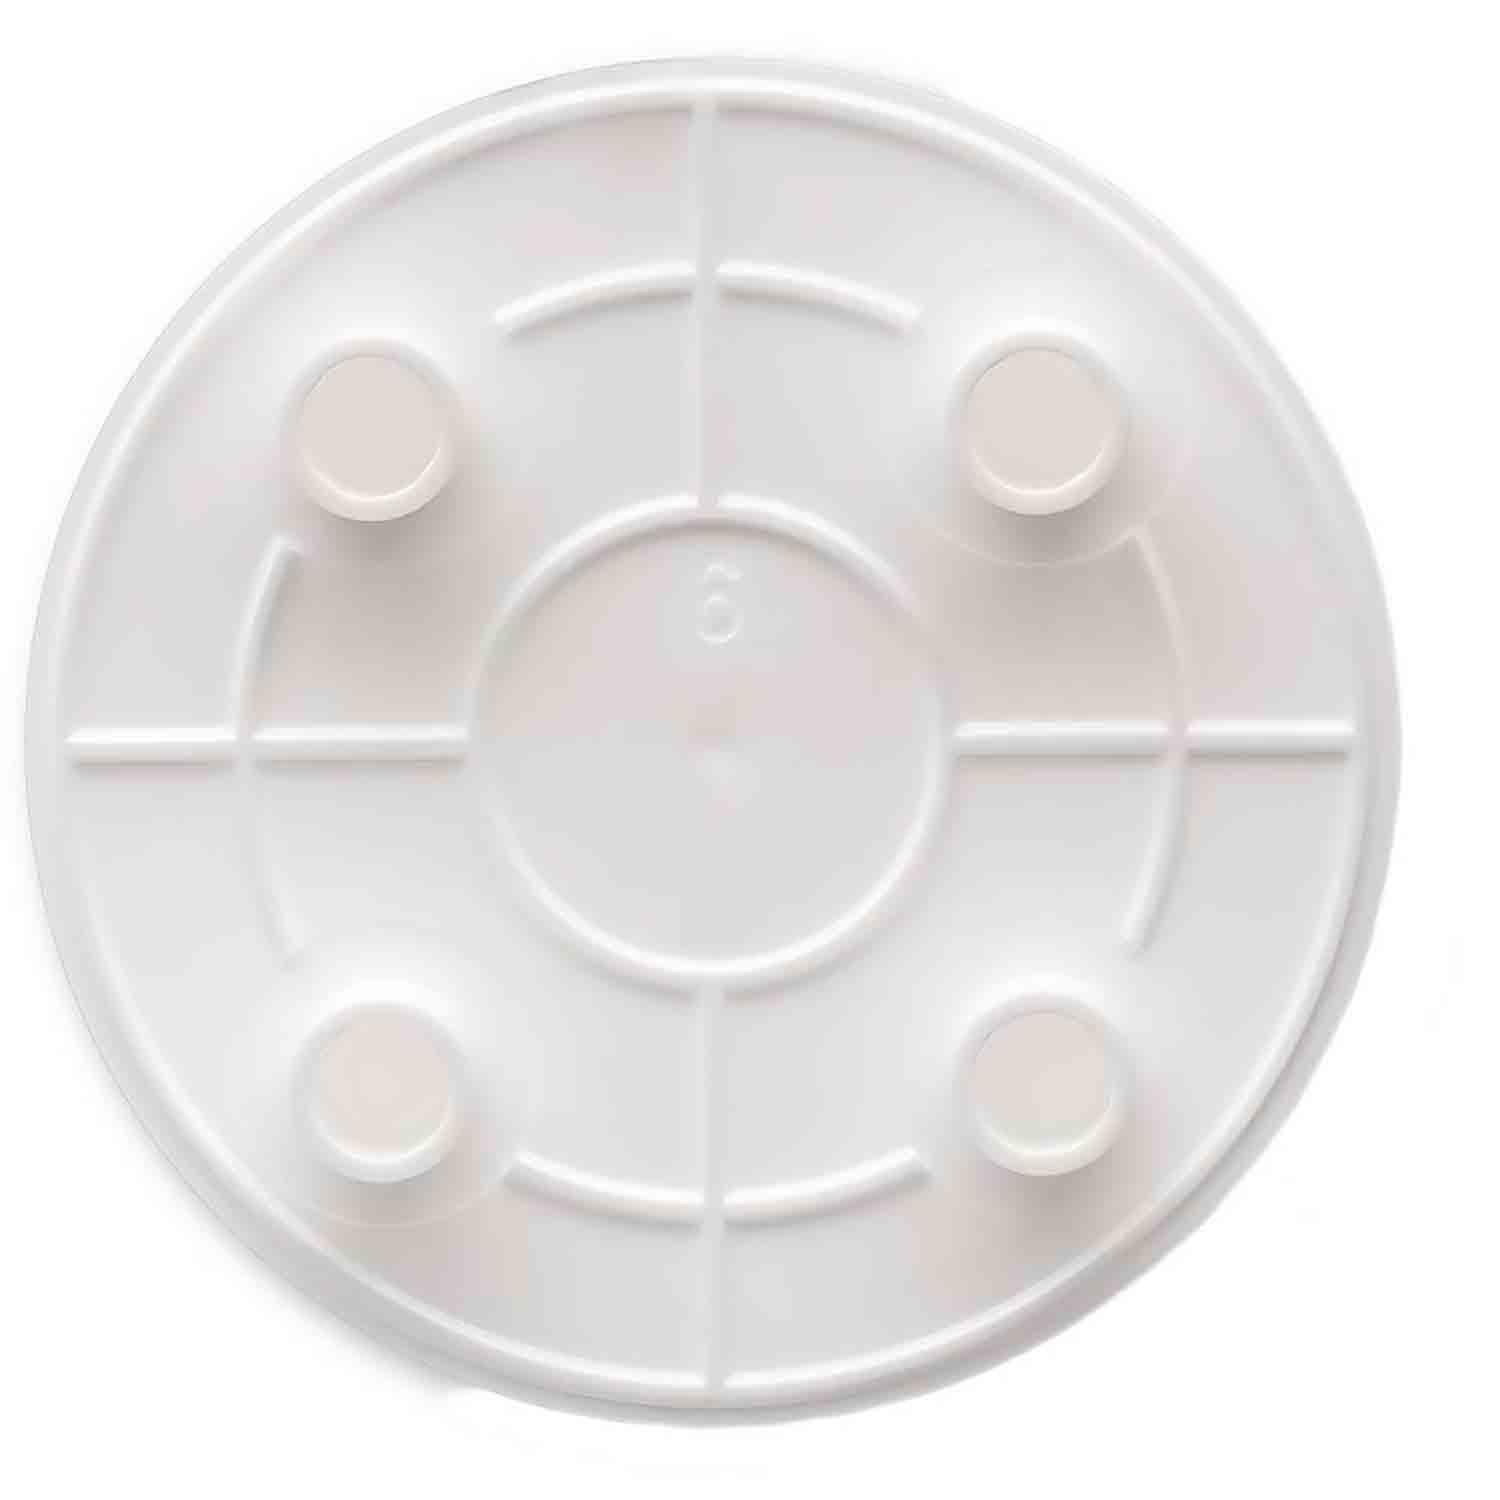 Ateco Separator Plates and Dowels